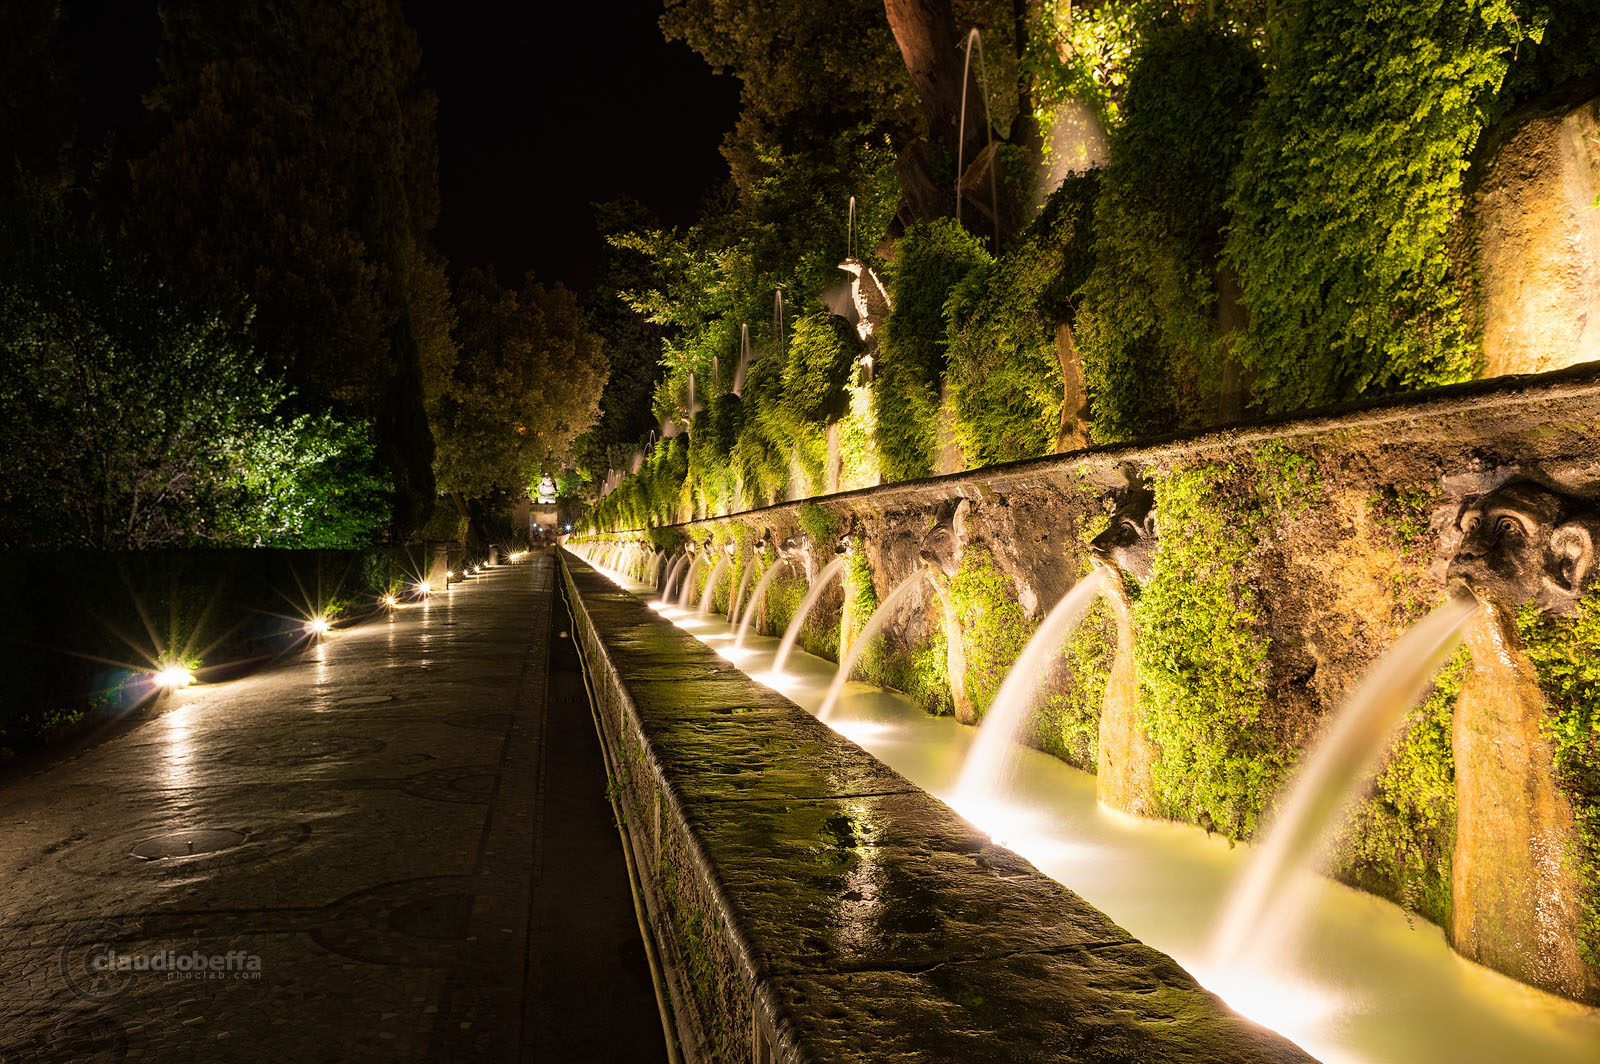 Hundred fountains, Villa d'Este, Garden, Tivoli, Italy